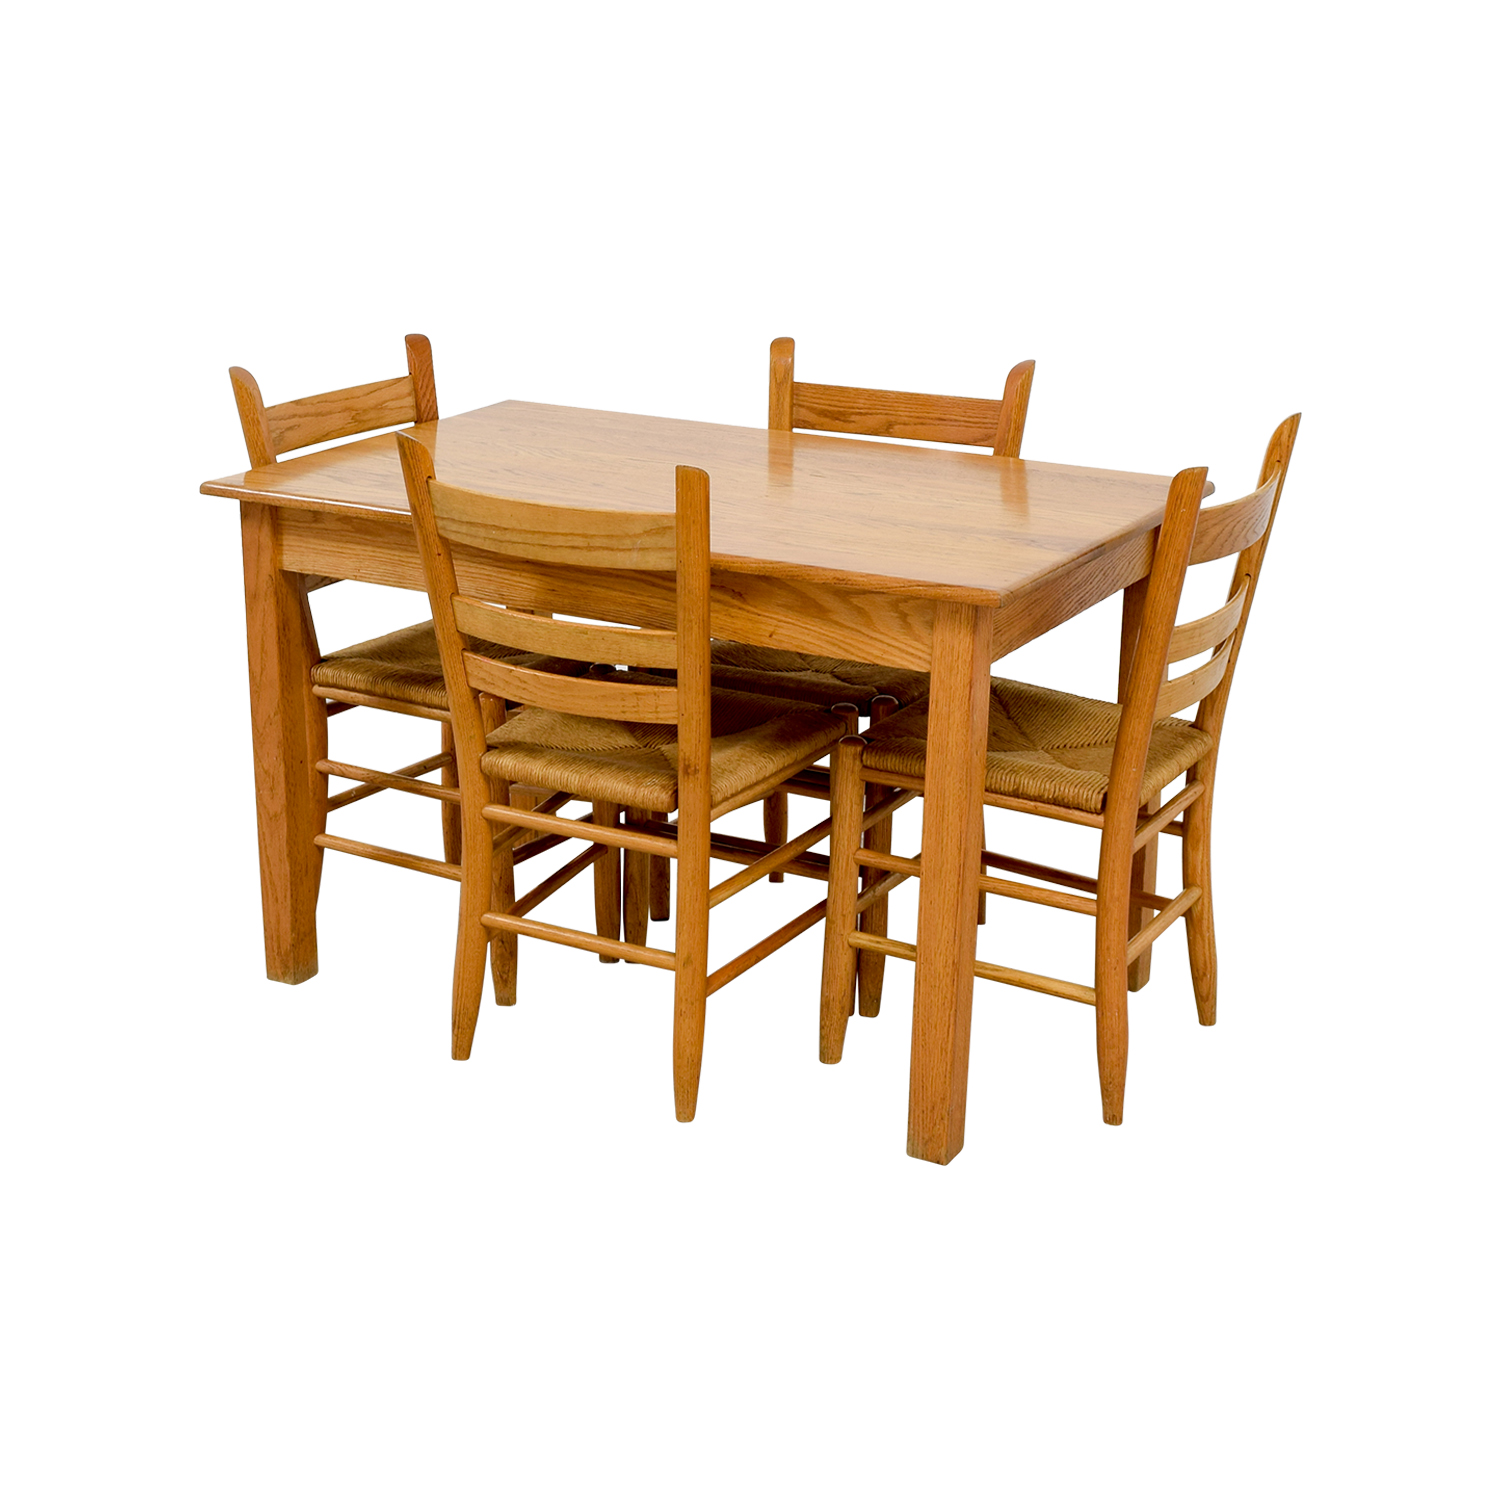 Maple Dining Chairs Purple Heart Cherry And Birdseye Maple